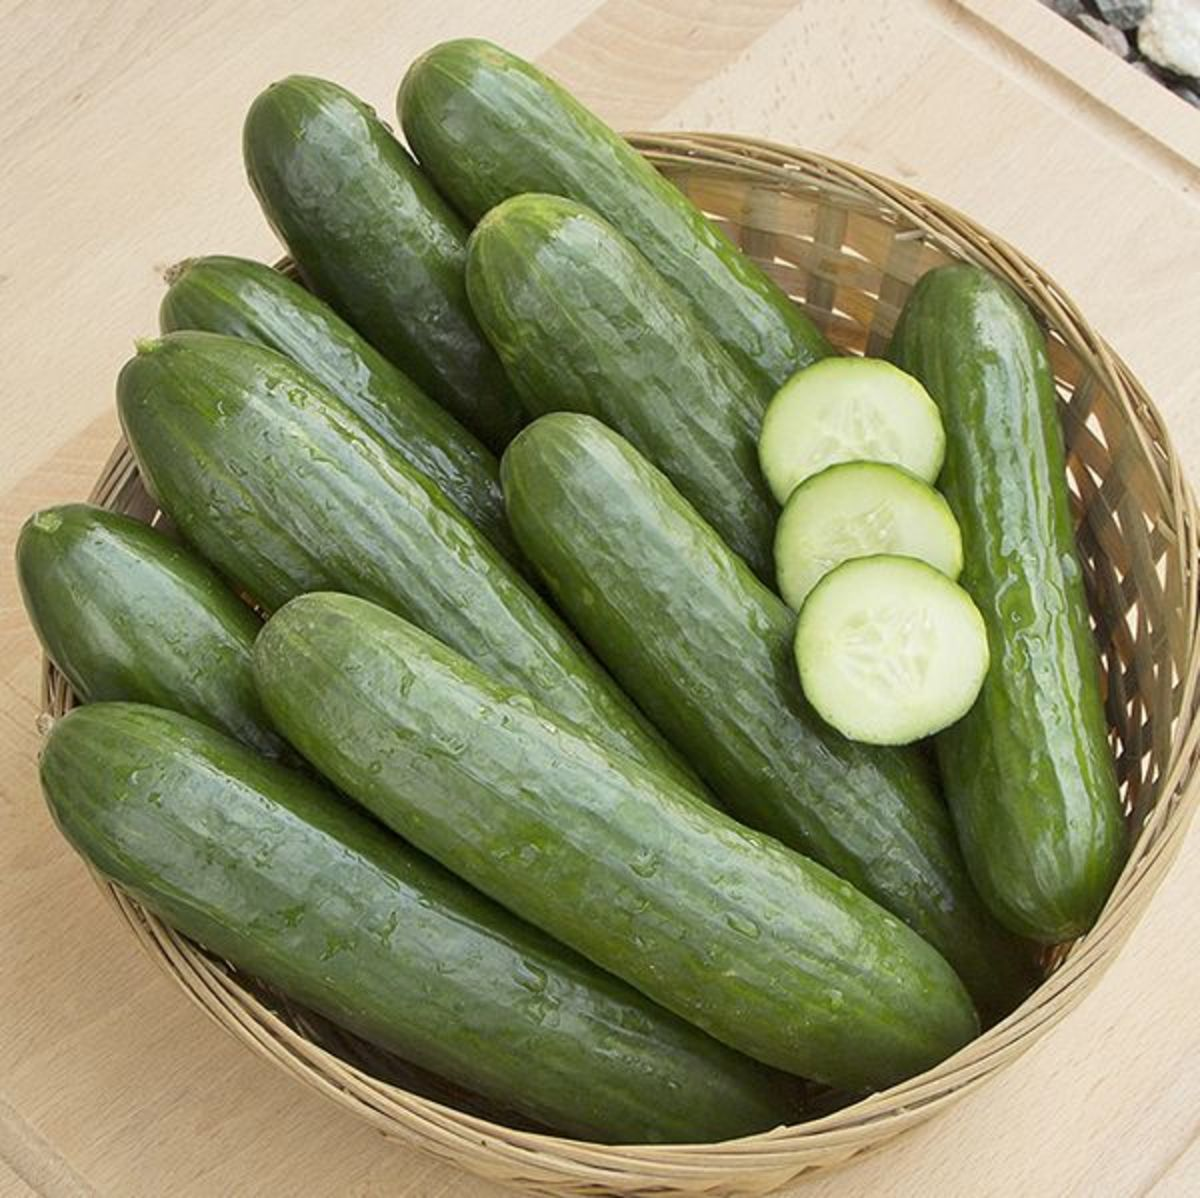 Cucumbers and Their Health Benefits